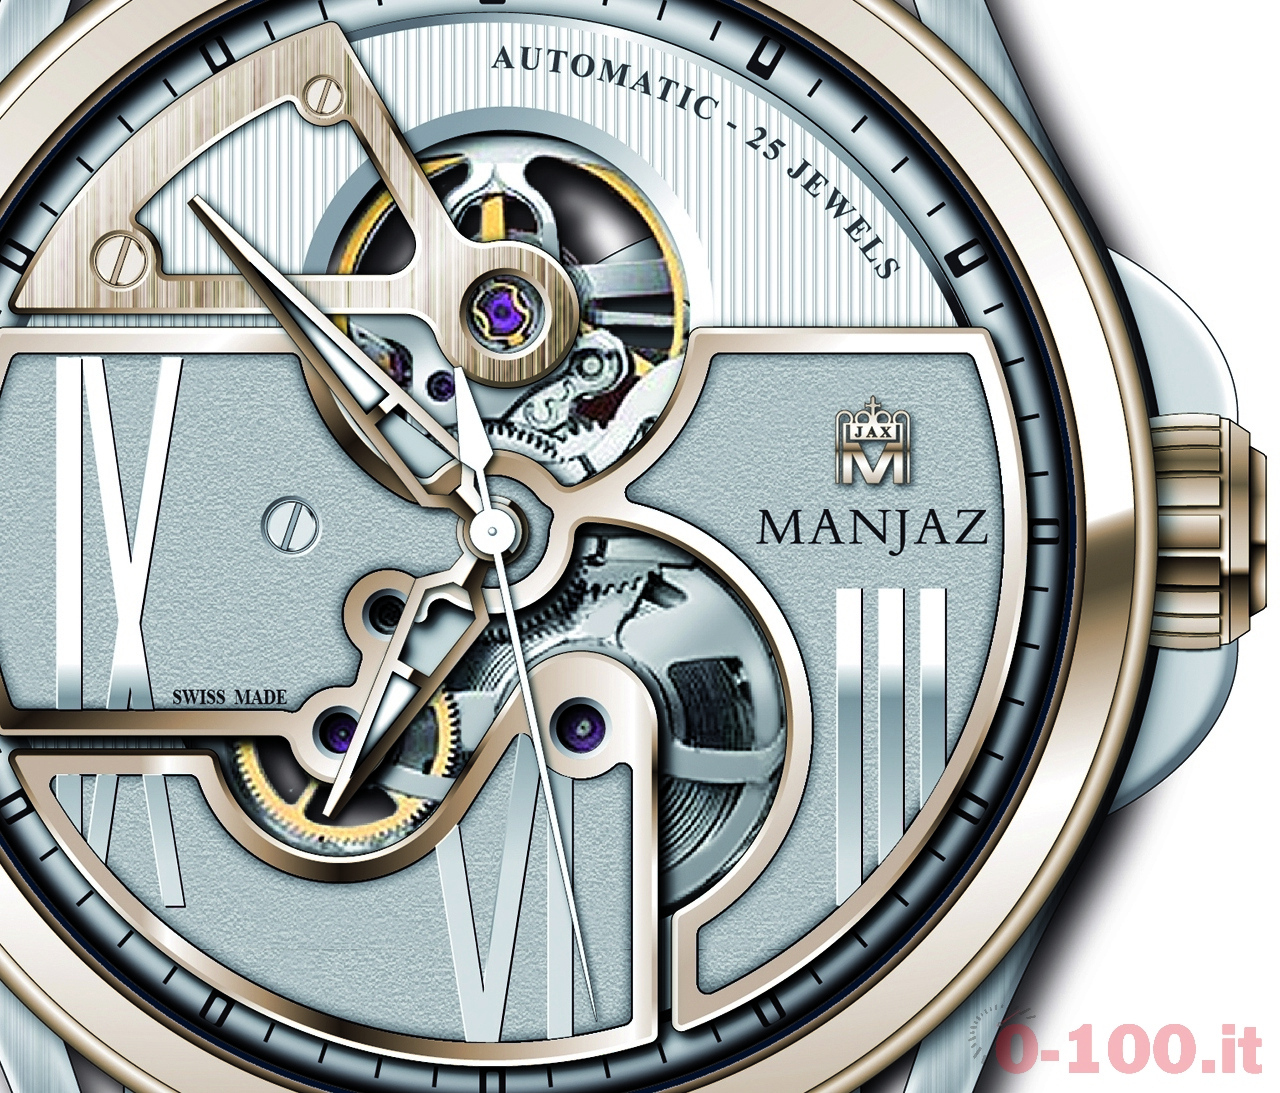 anteprima-baselworld-2015-manjaz-apollo-premium-skeleton_0-100_2